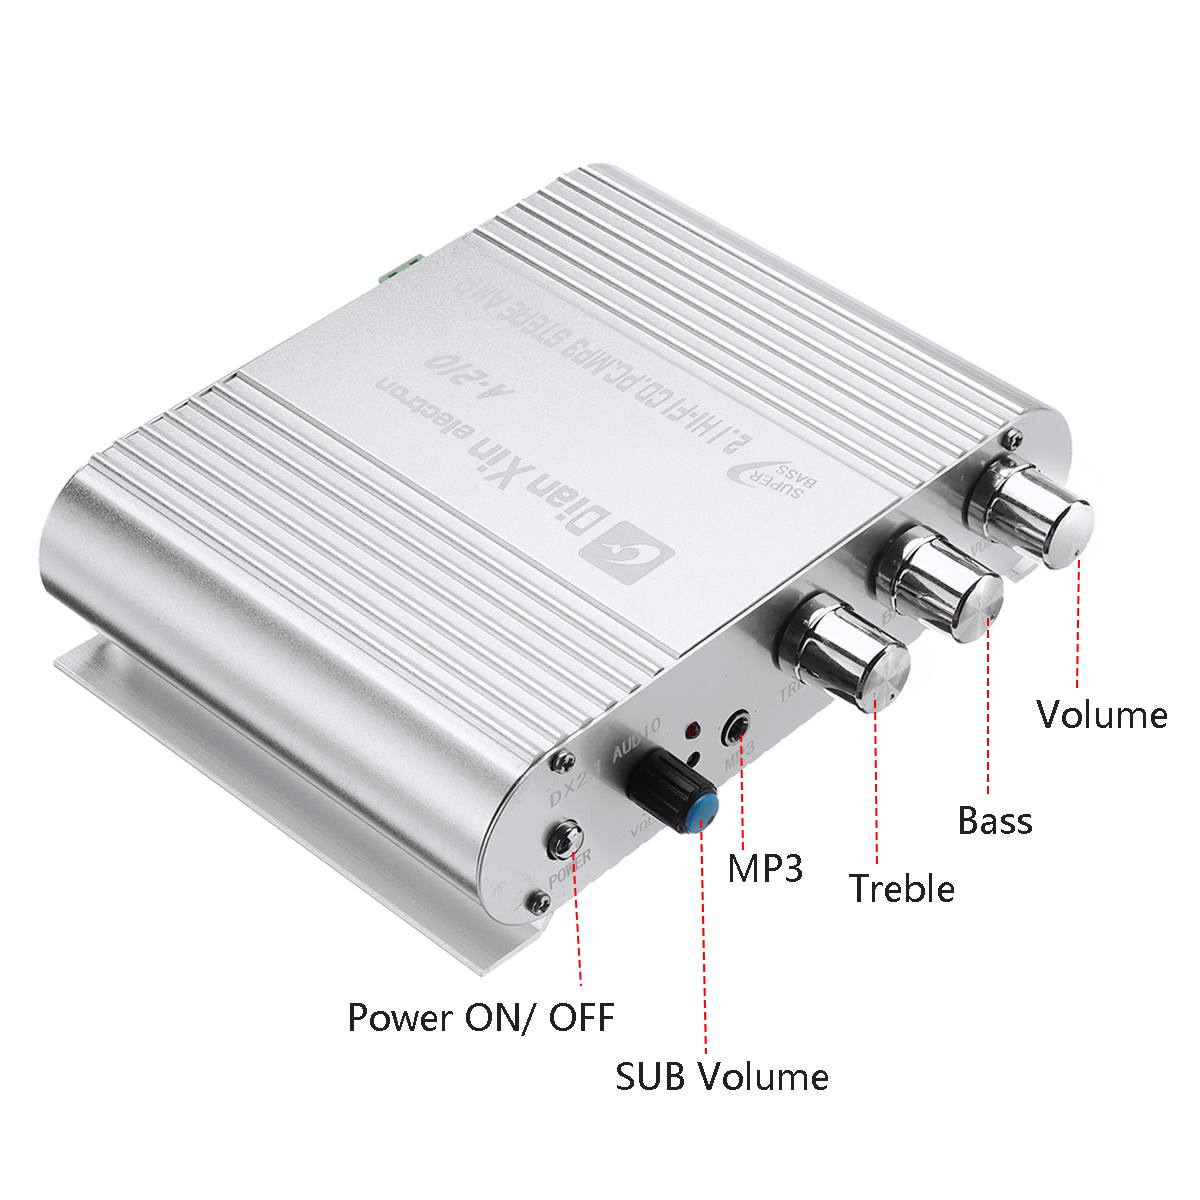 New DX-210 Car 3 Channel Amplifier Stereo Mega Bass 12V-15V Hi-Fi Amplifiers Connect For PC DVD Player MP3 MP4 Players Subwoofer